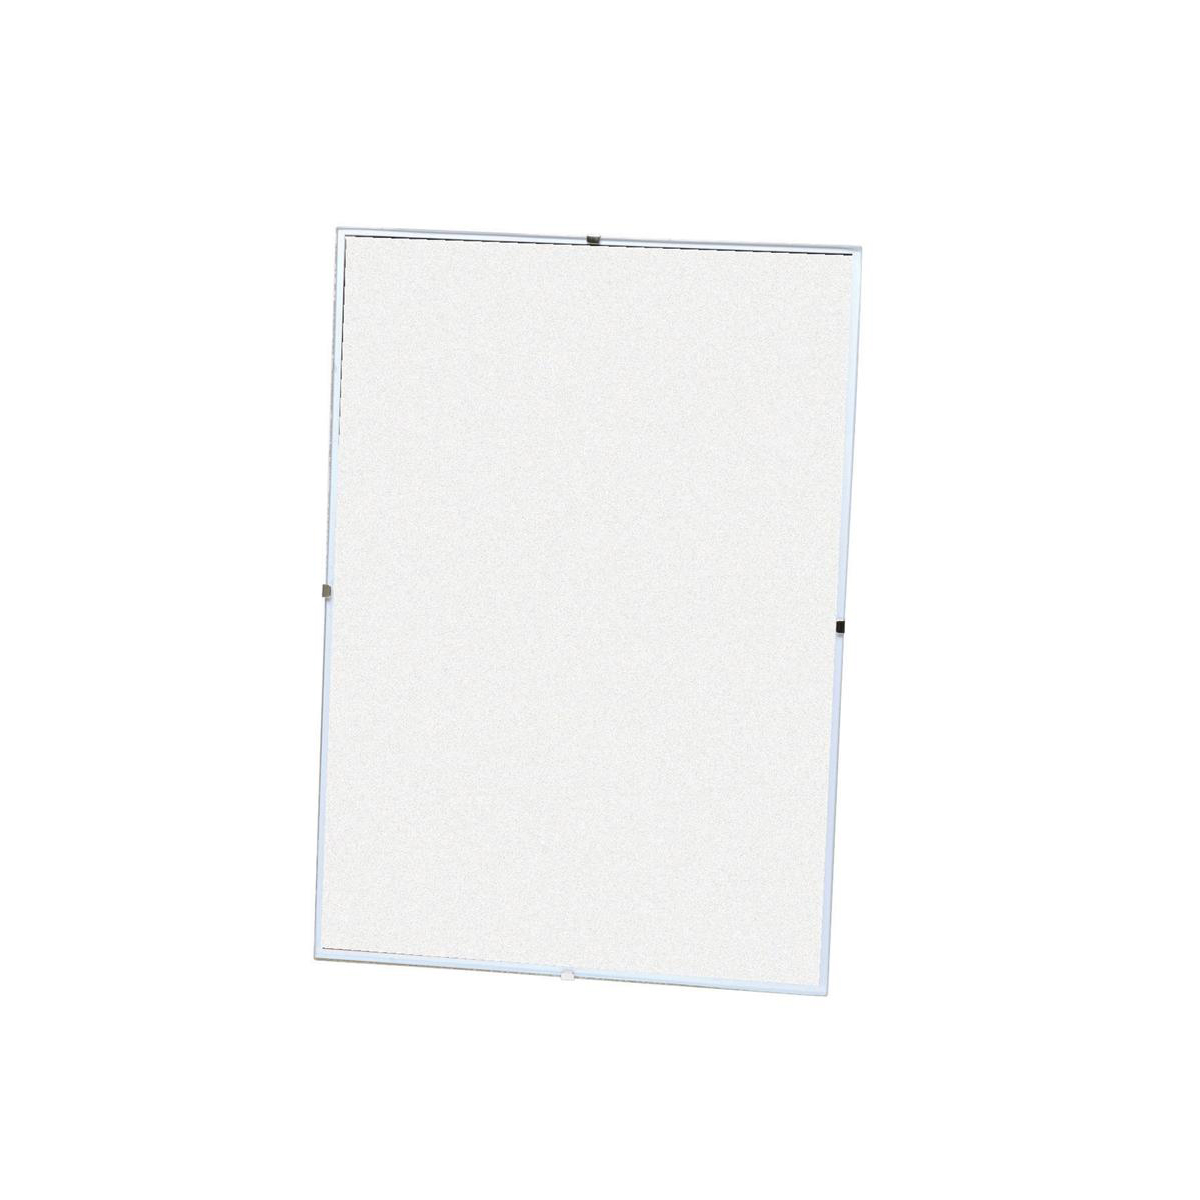 Certificate / Photo Frames 5 Star Office Clip Frame Plastic Front for Wall-mounting Back-loading Borderless A3 420x297mm Clear